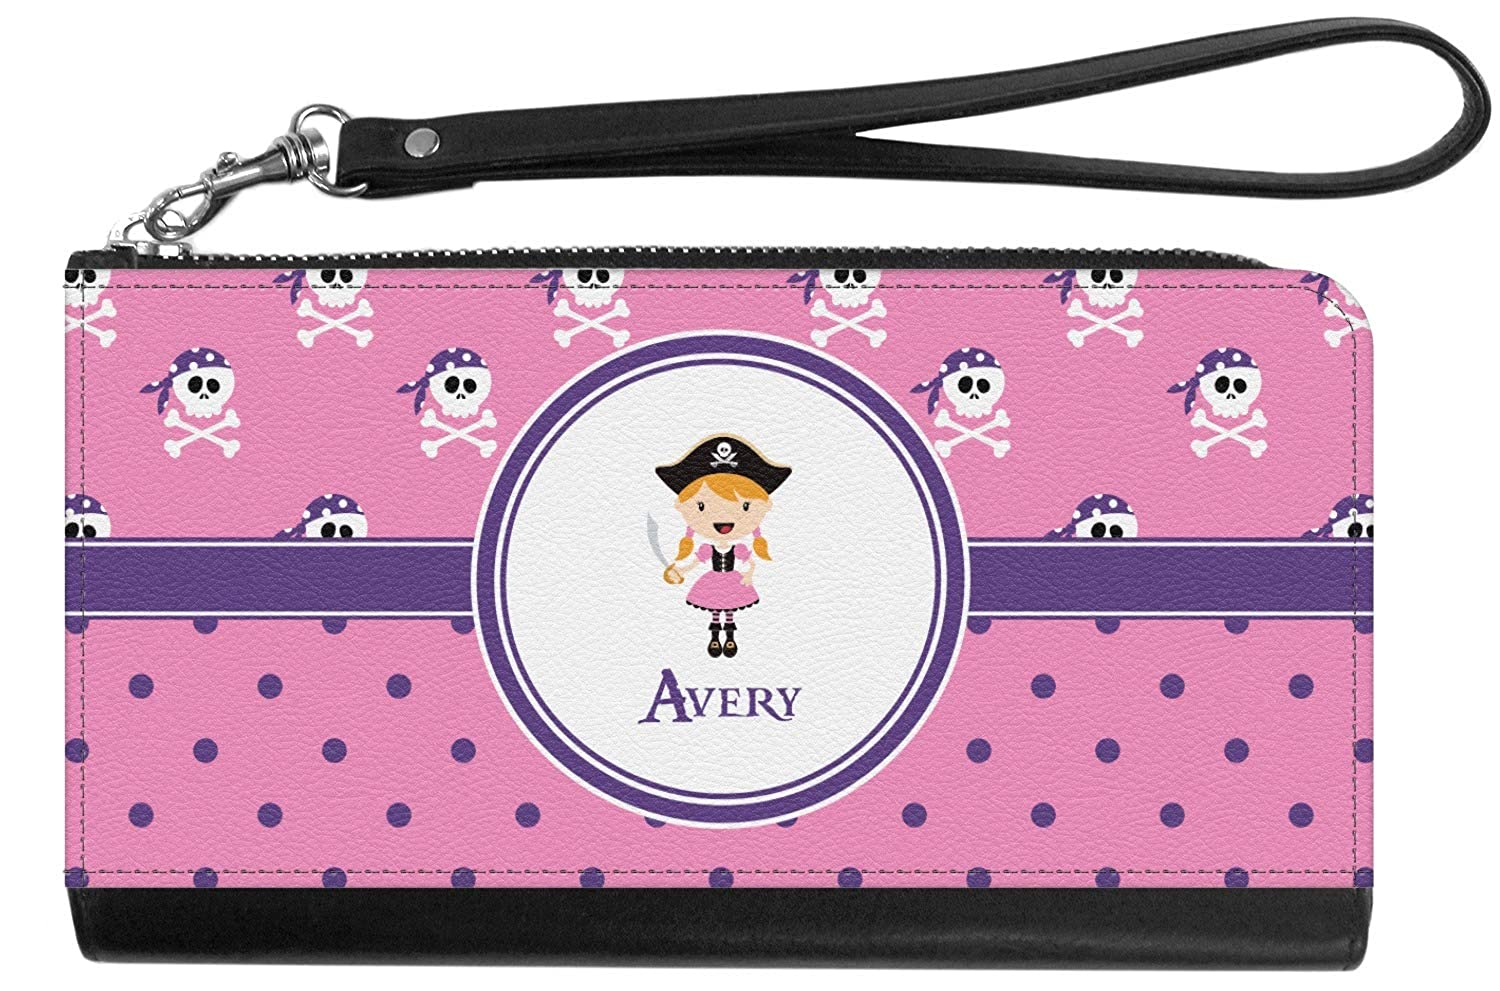 Pink Pirate Genuine Leather Smartphone Wrist Wallet Personalized